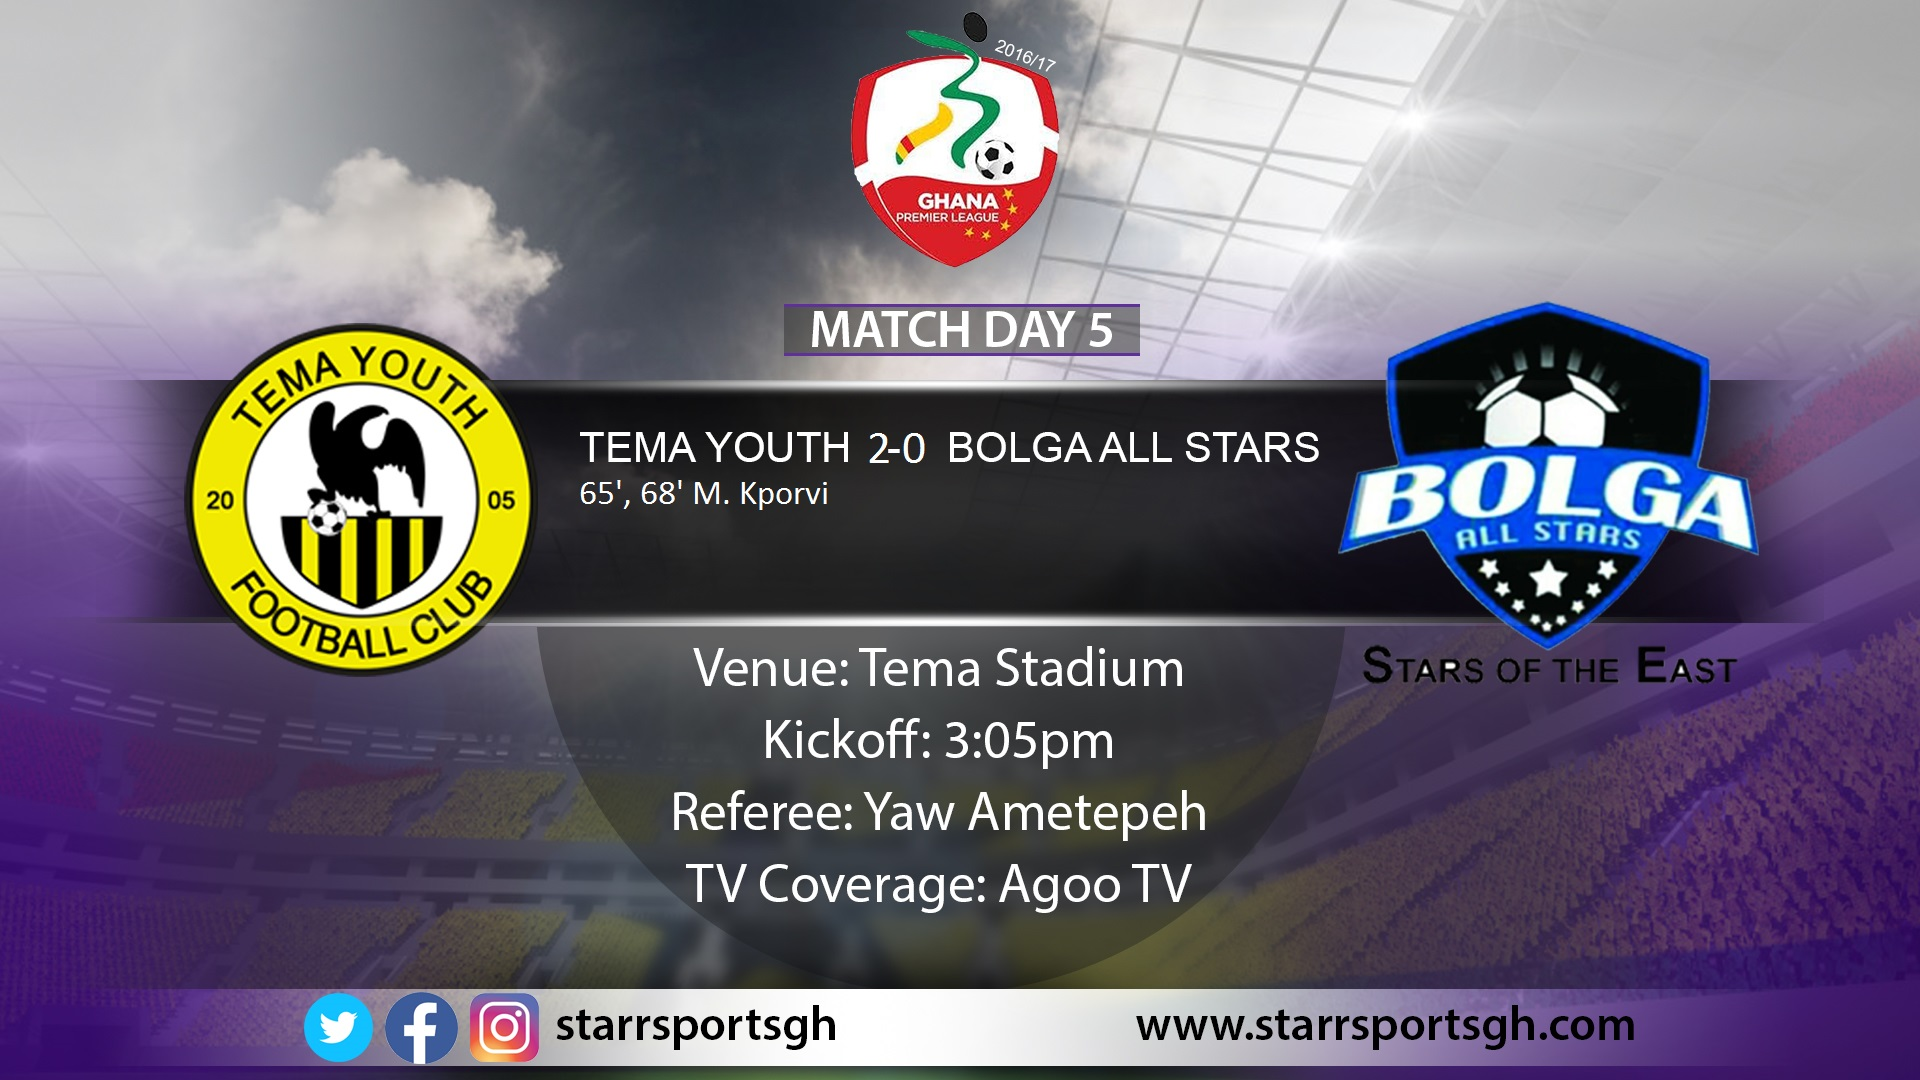 Kporvi brace inspires Tema Youth to victory over Bolga All Stars